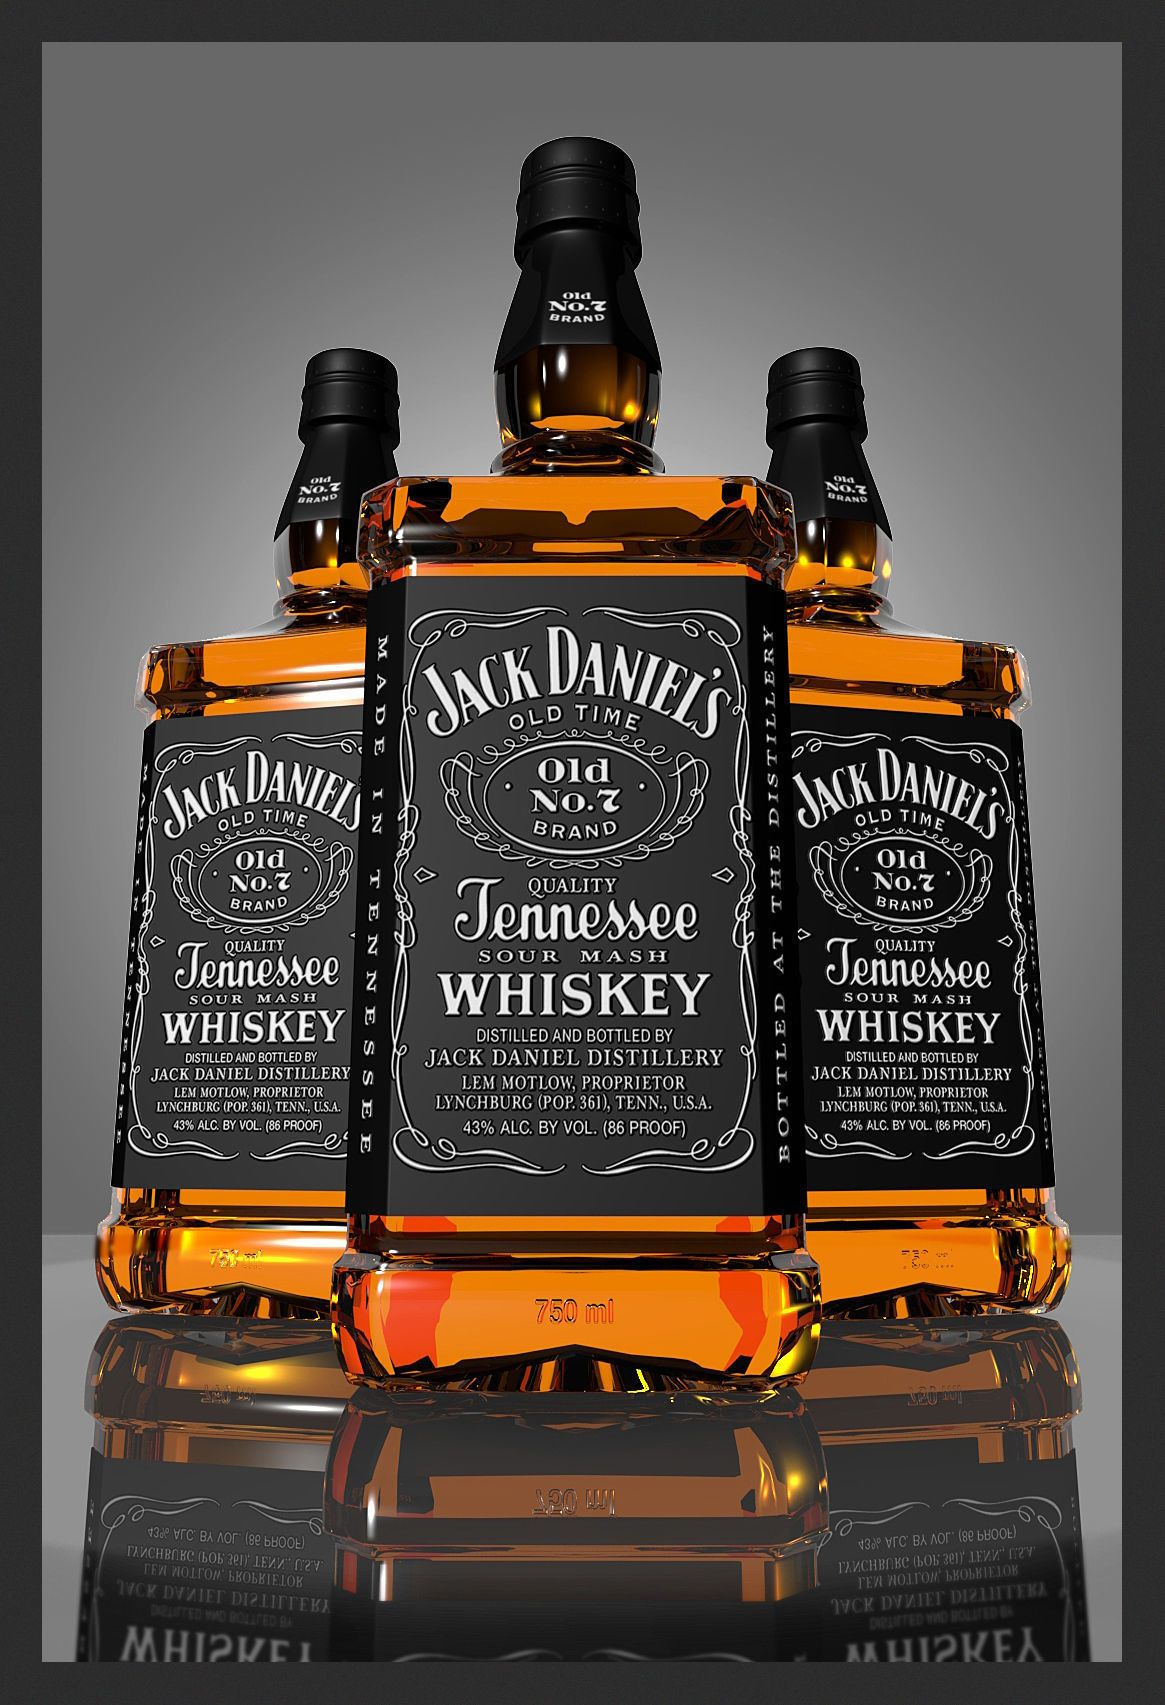 Jack Daniels Bottle by onka3d. / You can buy this 3D model